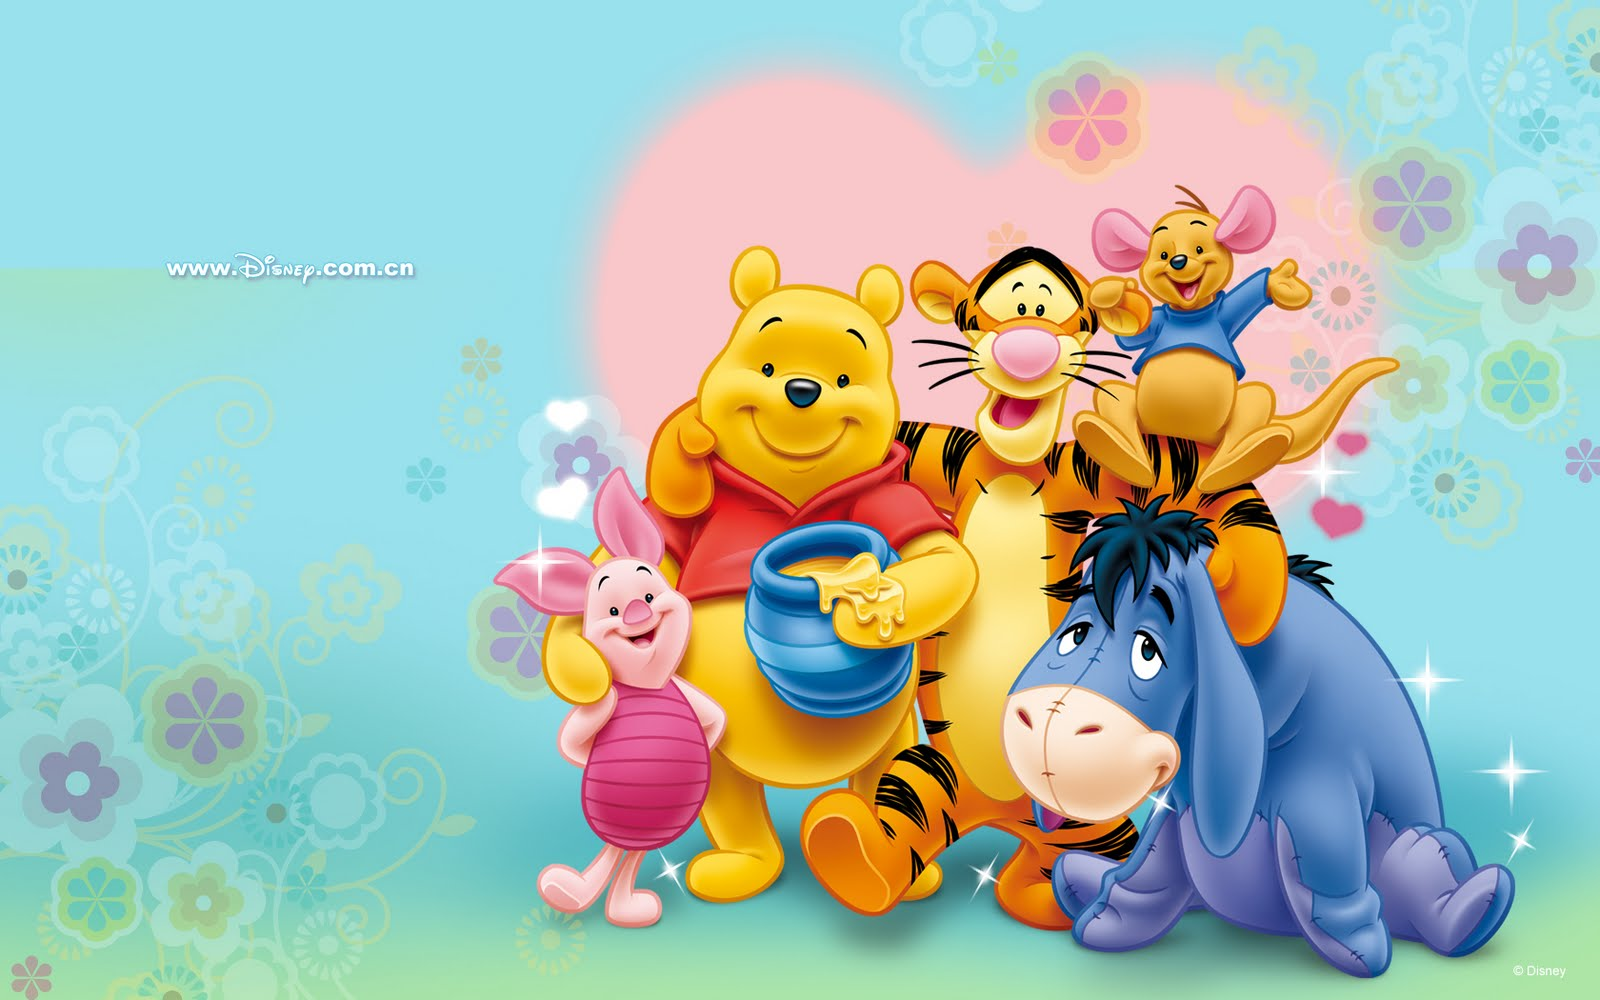 Wallpapers de Winnie Pooh by Disney I (8 imágenes)